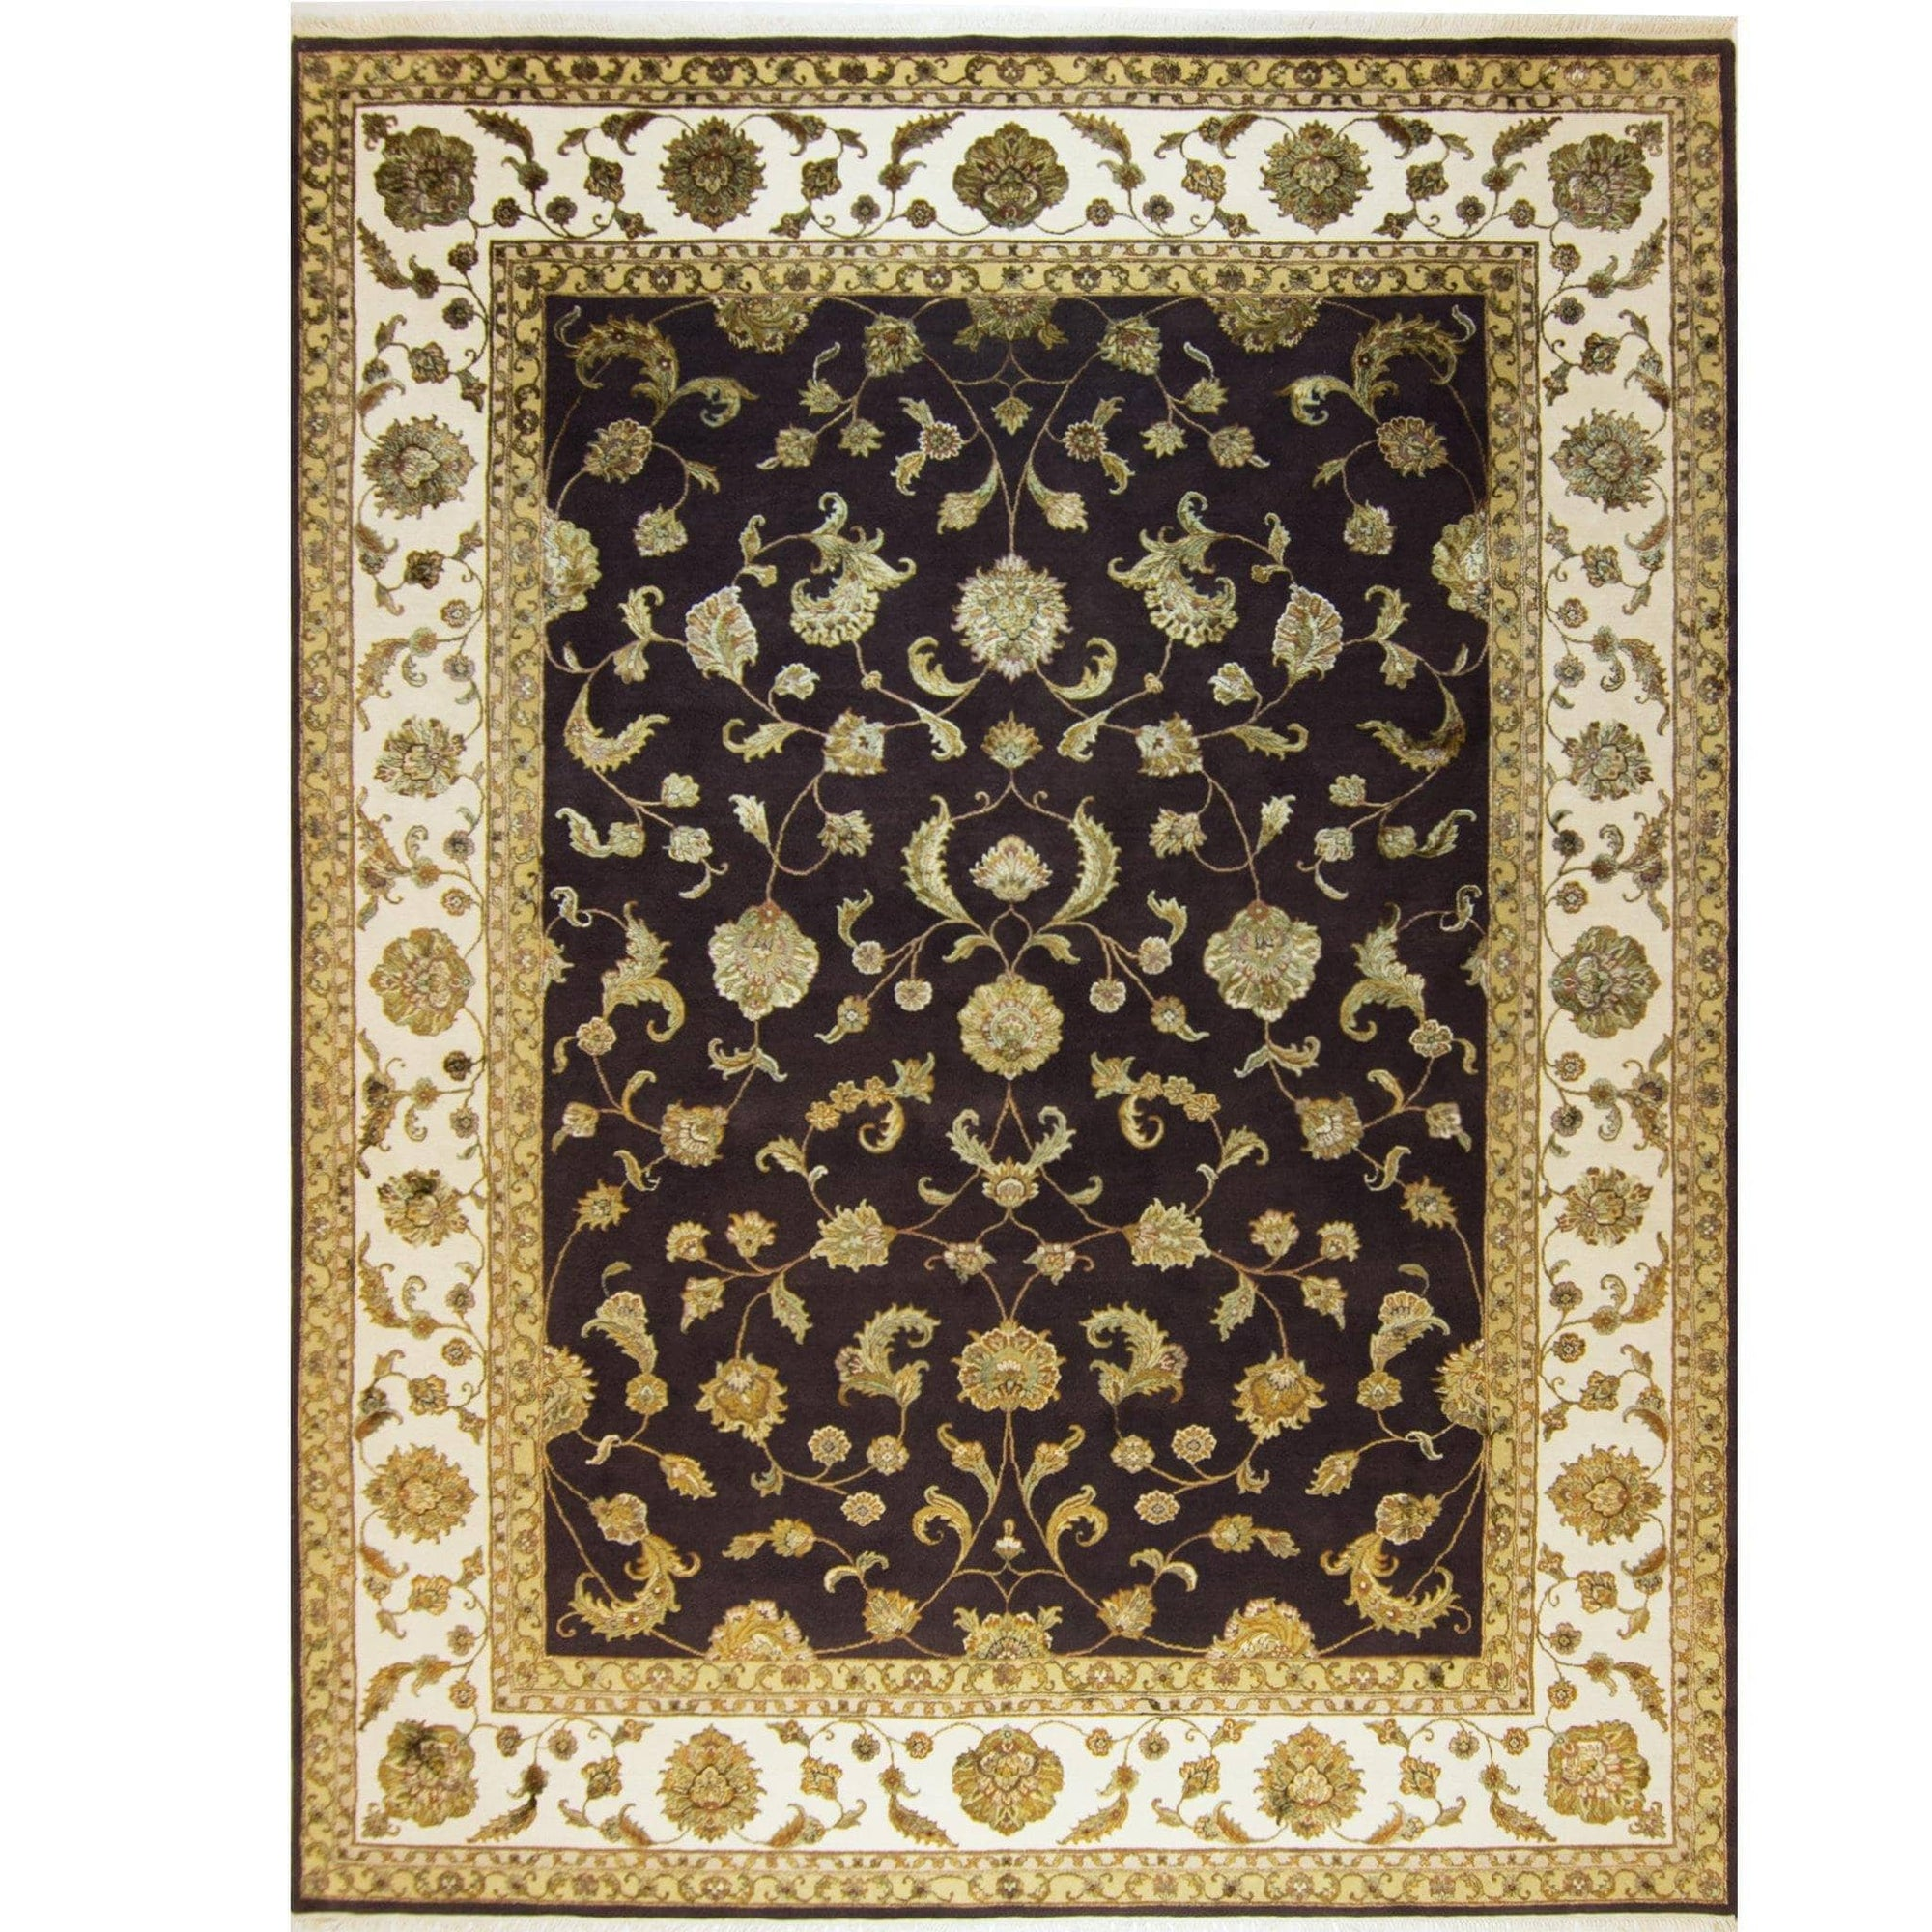 Modern Fine Hand-knotted Wool & Silk Elegance Rug 275cm x 361cm Persian-Rug | House-of-Haghi | NewMarket | Auckland | NZ | Handmade Persian Rugs | Hand Knotted Persian Rugs